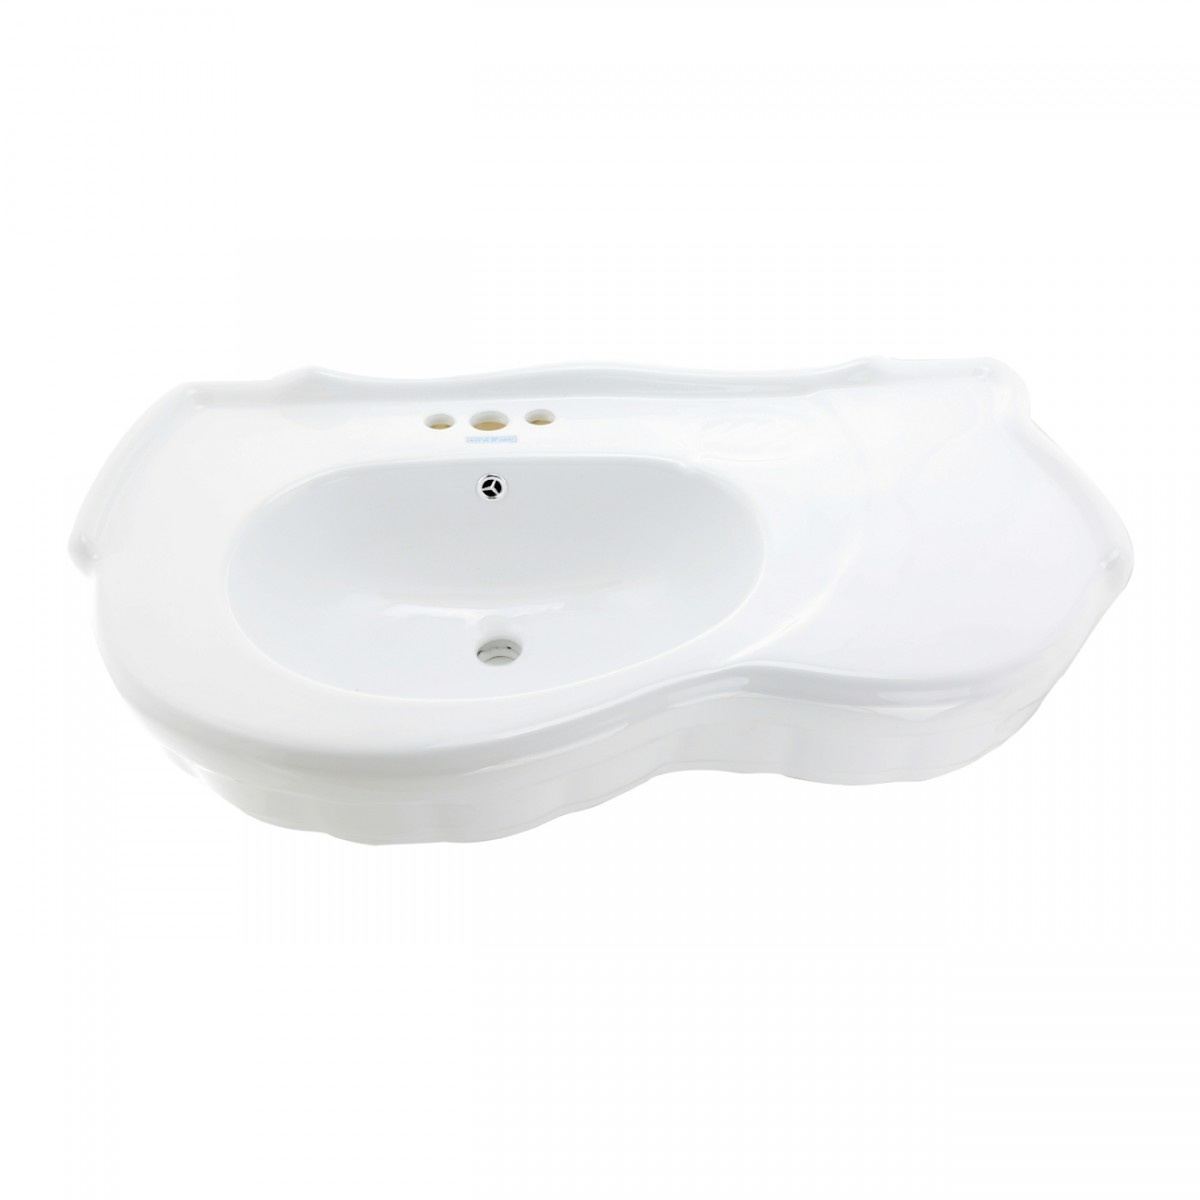 Bathroom Console Sinks White Porcelain Southern Belle Sink Part Porcelain Console Sink Glossy Console Sinks Bathroom Console Sink